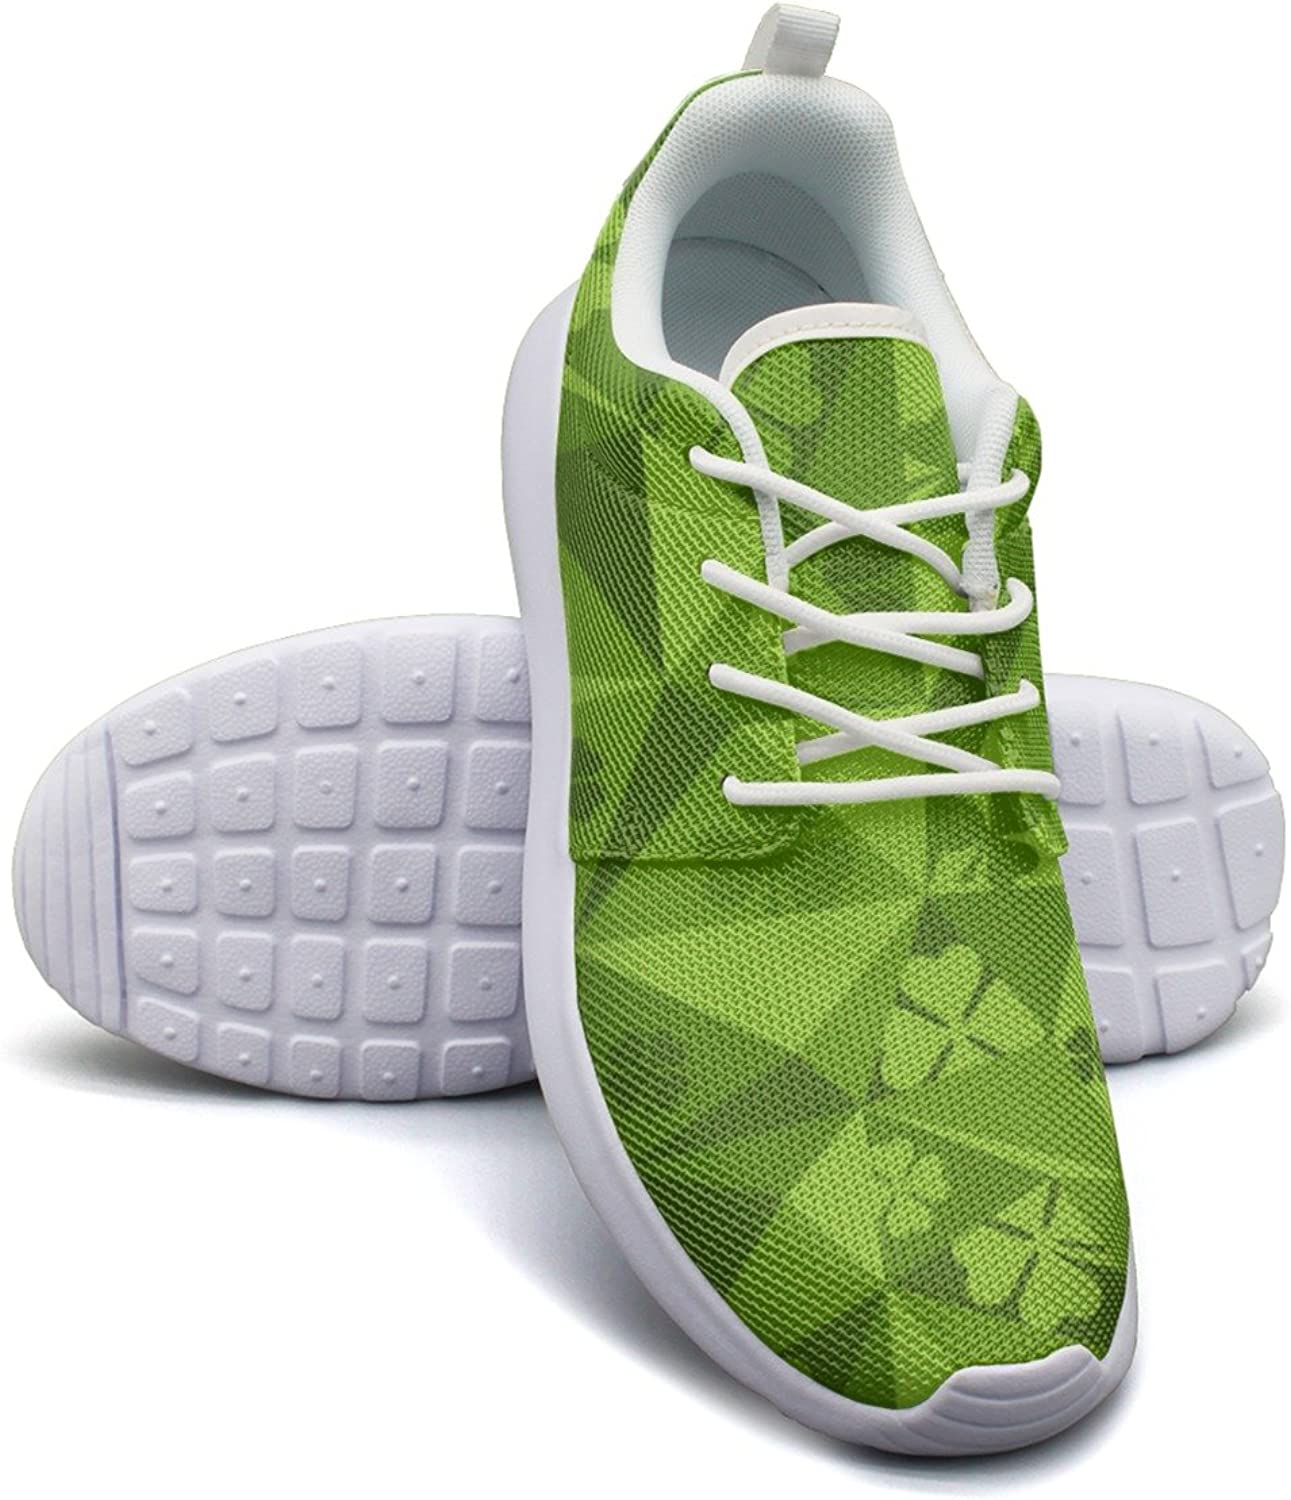 Lucky Shamrock Plant Green Women's Lightweight Mesh Sneakers Climbing Sports shoes